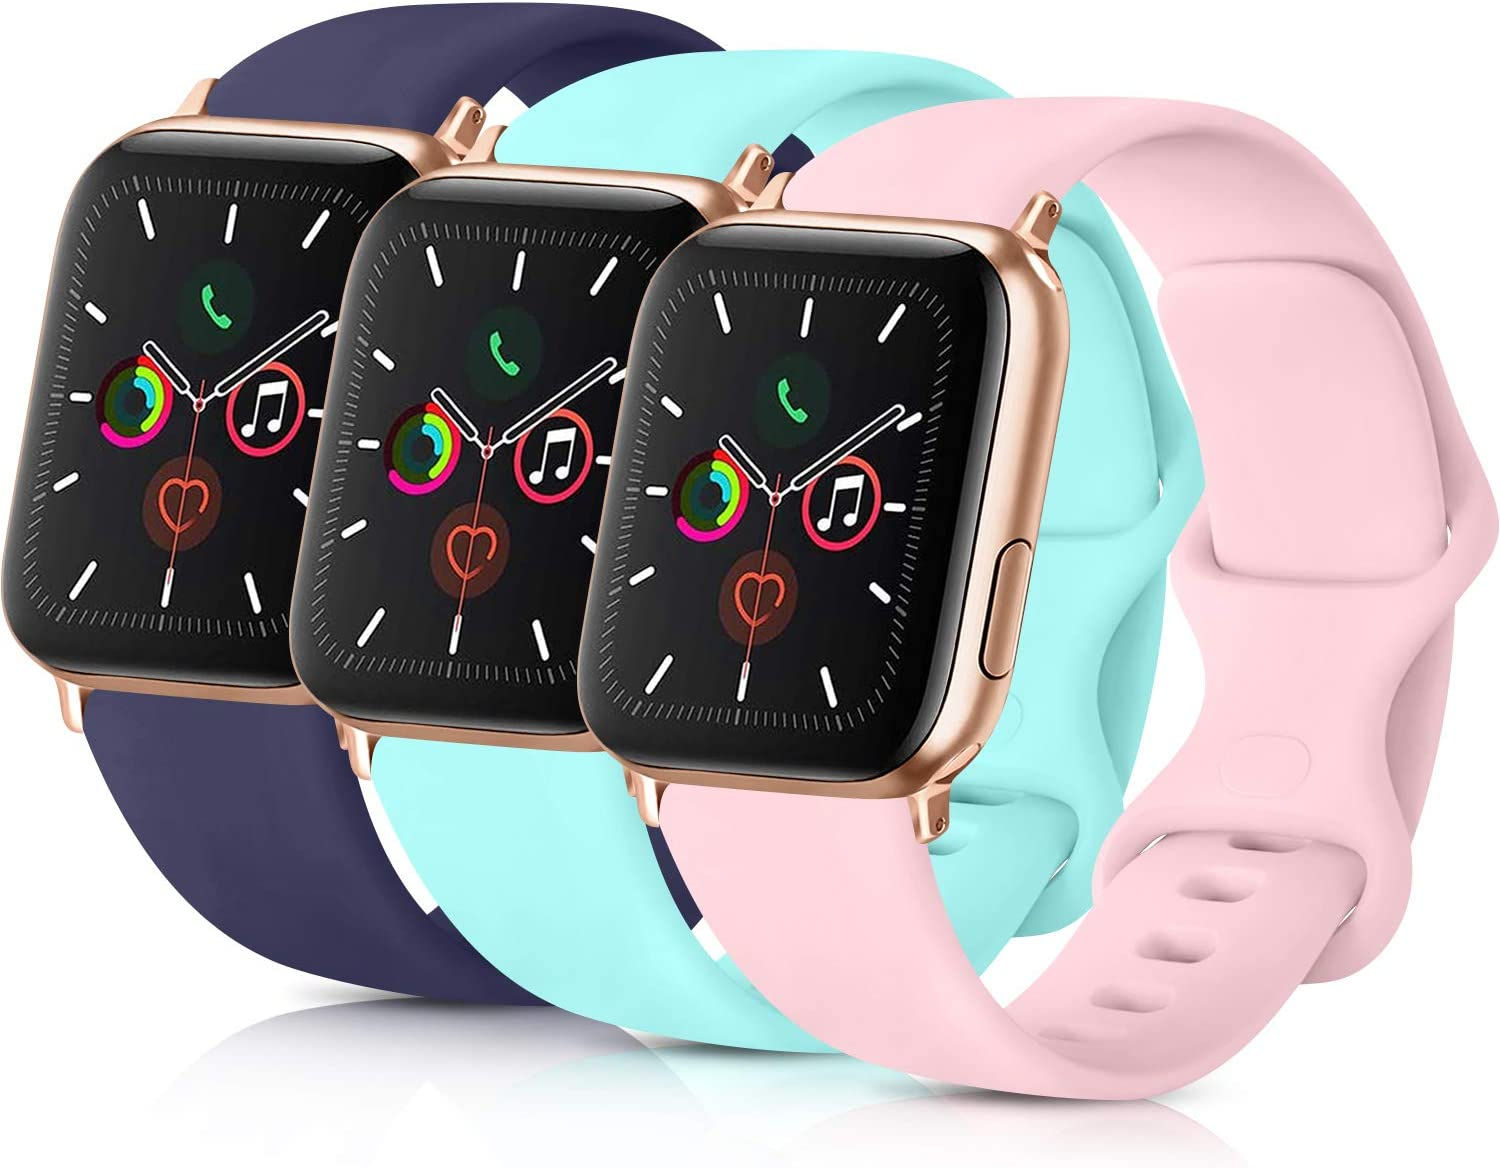 PACK 3 Compatible with Apple Watch Band 38mm 40mm 42mm 44mm Women Men, Soft Silicone Band Replacement for Apple iWatch Series 4, Series 3, Series 2, Series 1 (Navy Blue/Light Blue/Pink, 38mm/40mm-M/L)